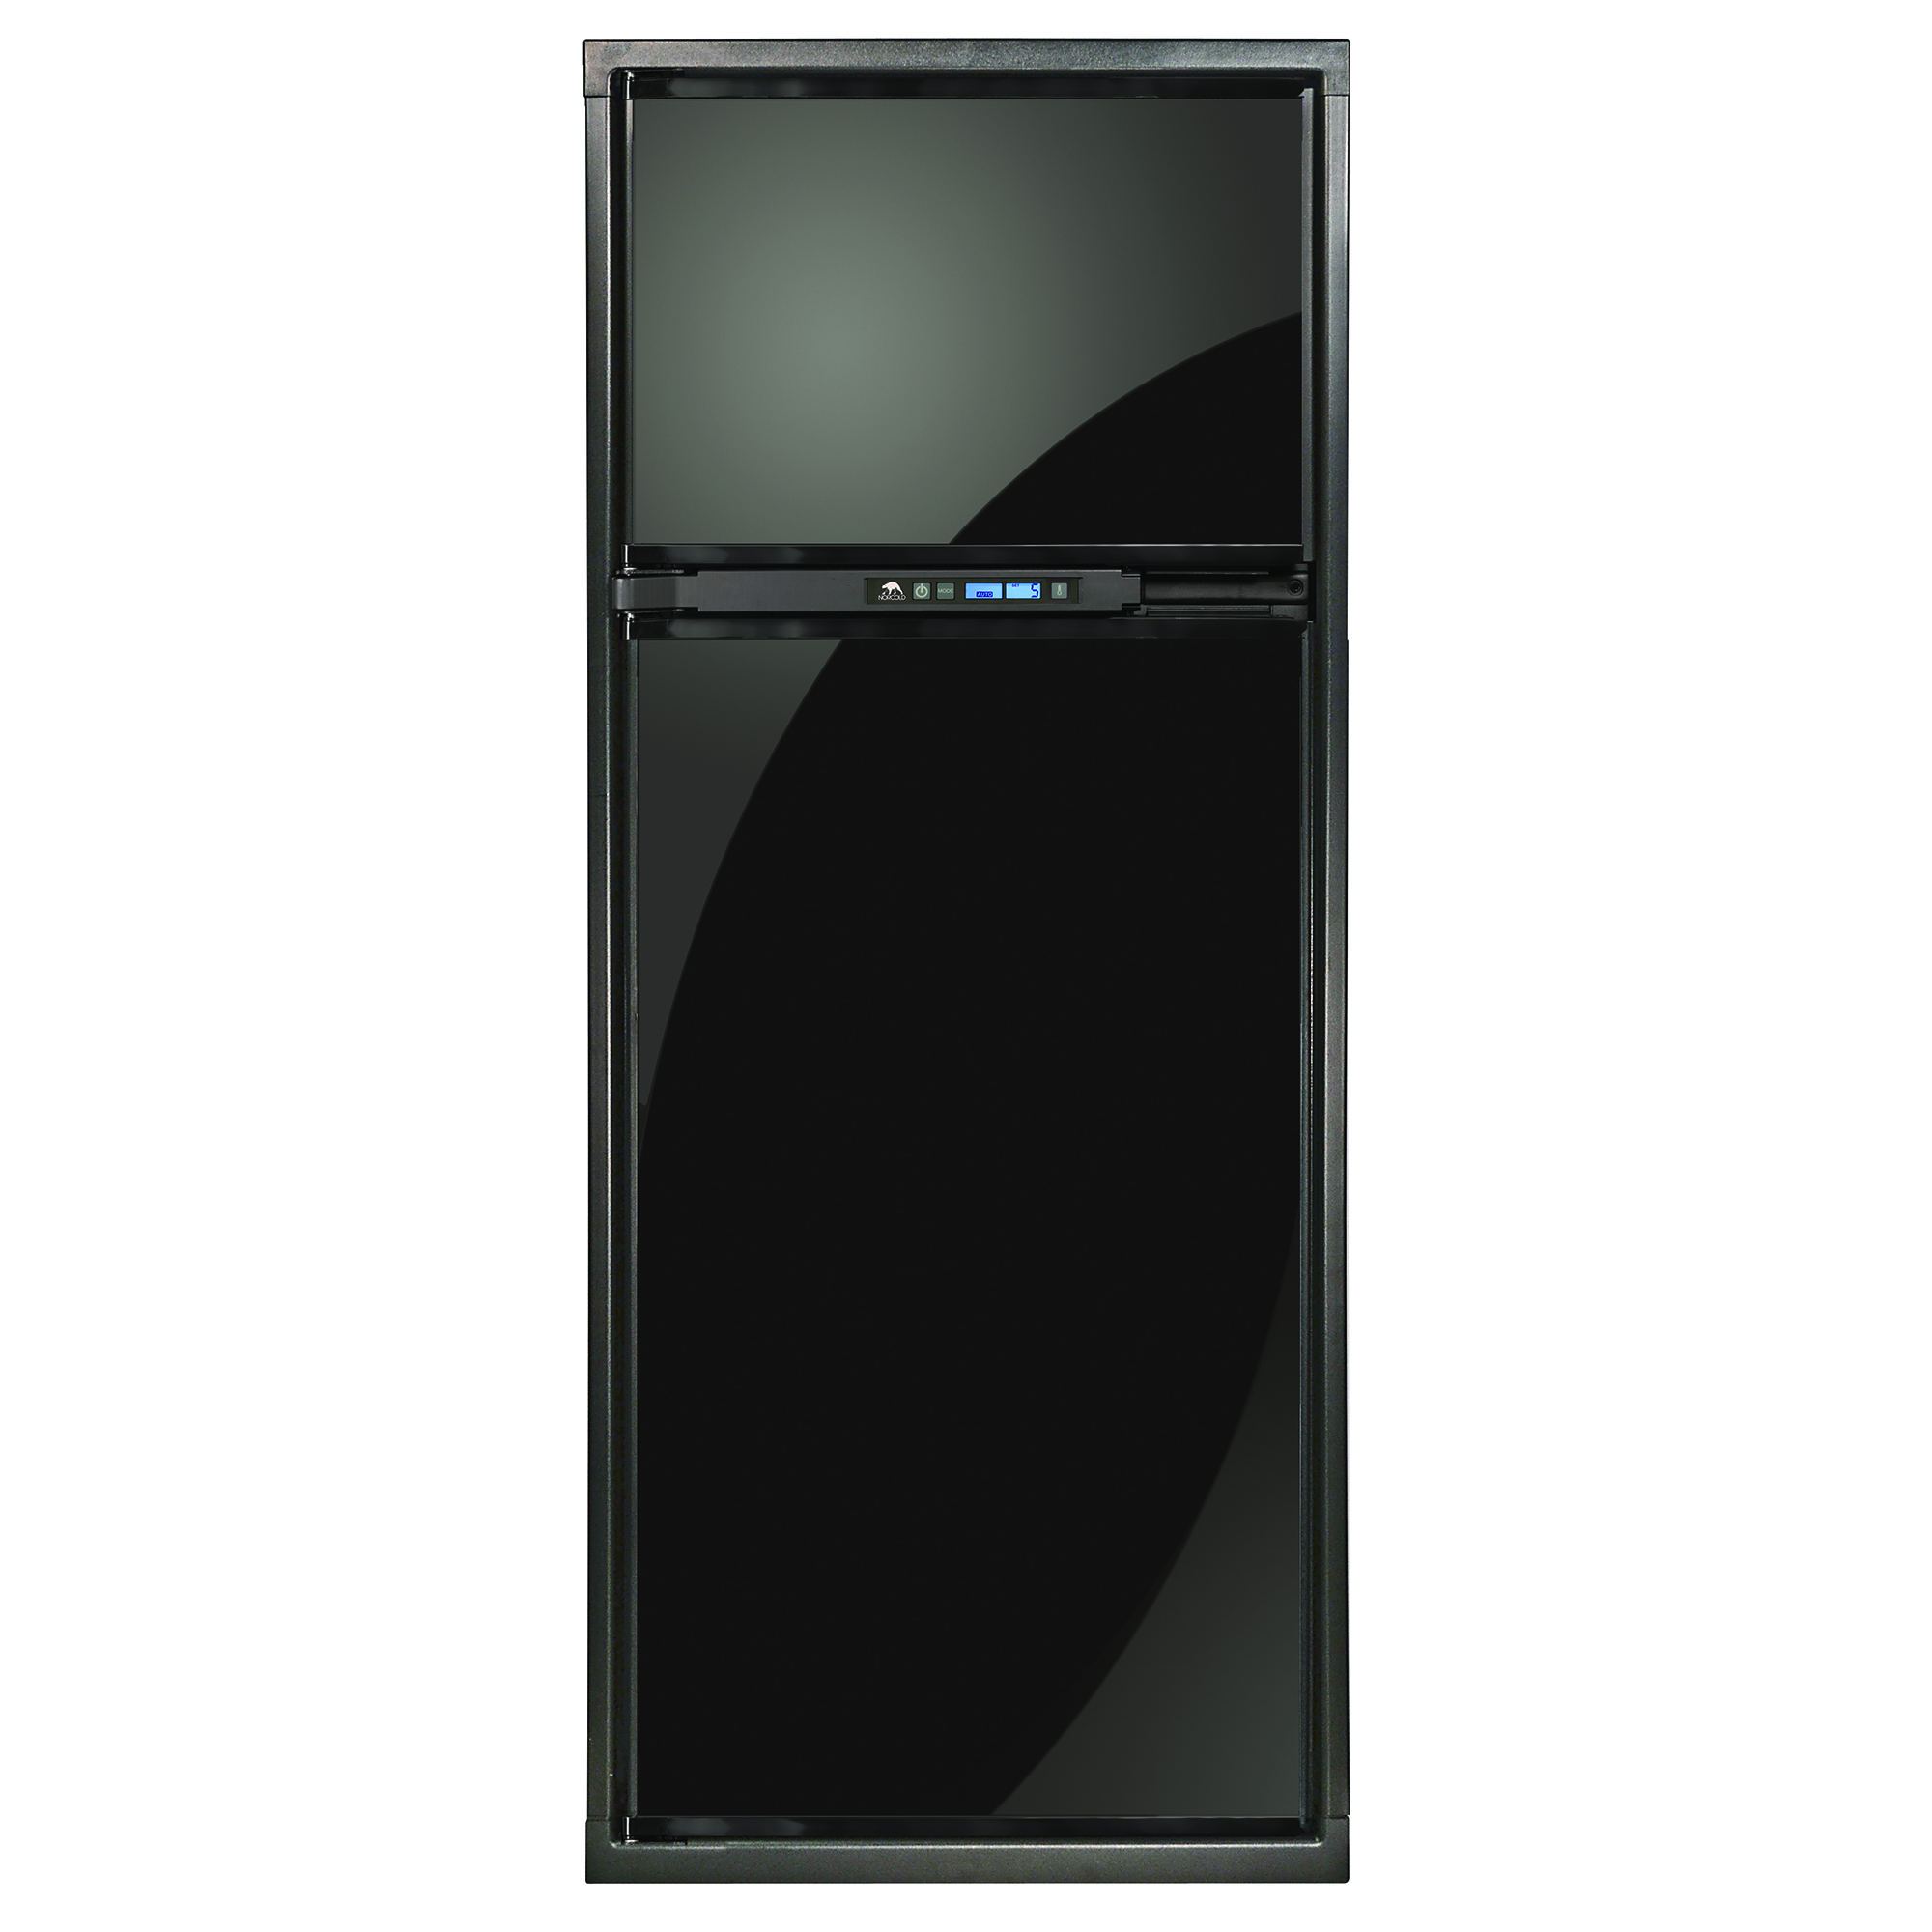 Norcold Polar 2-Way AC/LP 10 cu. ft. Refrigerator with Cold Weather Kit, Left Swing Door